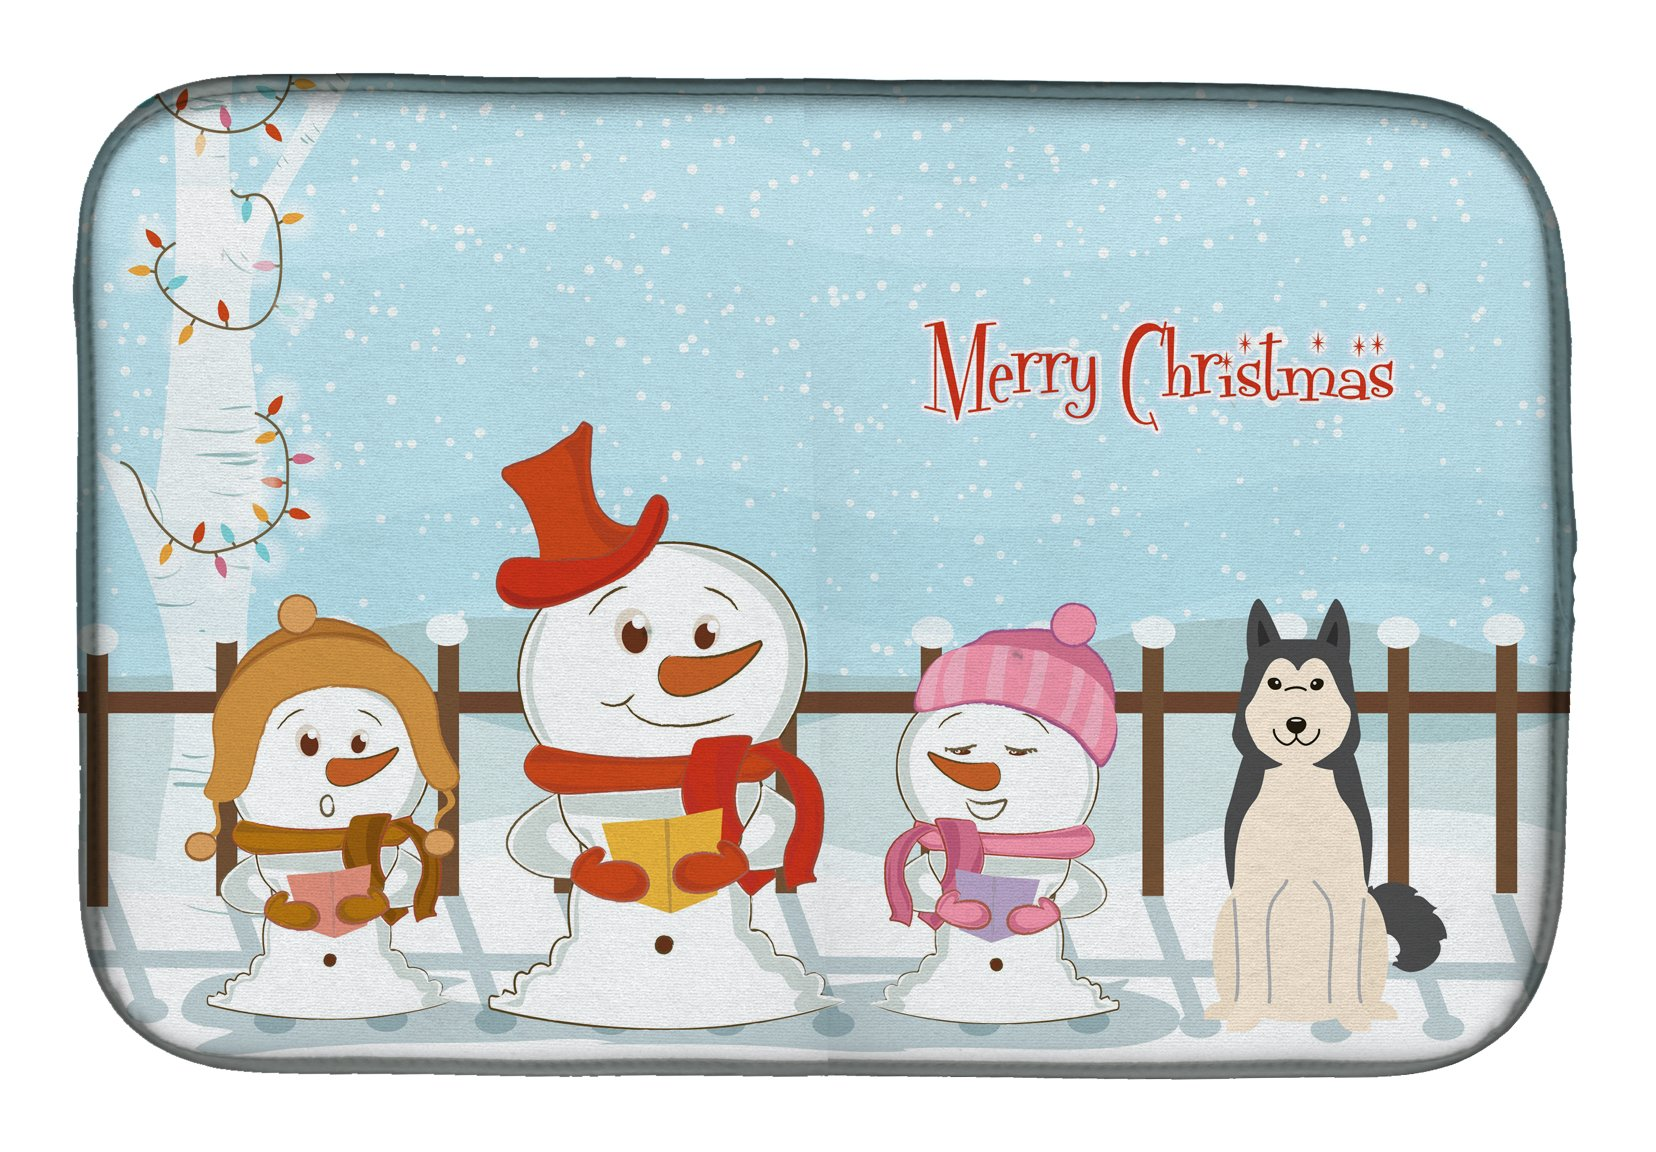 Merry Christmas Carolers West Siberian Laika Spitz Dish Drying Mat BB2356DDM by Caroline's Treasures